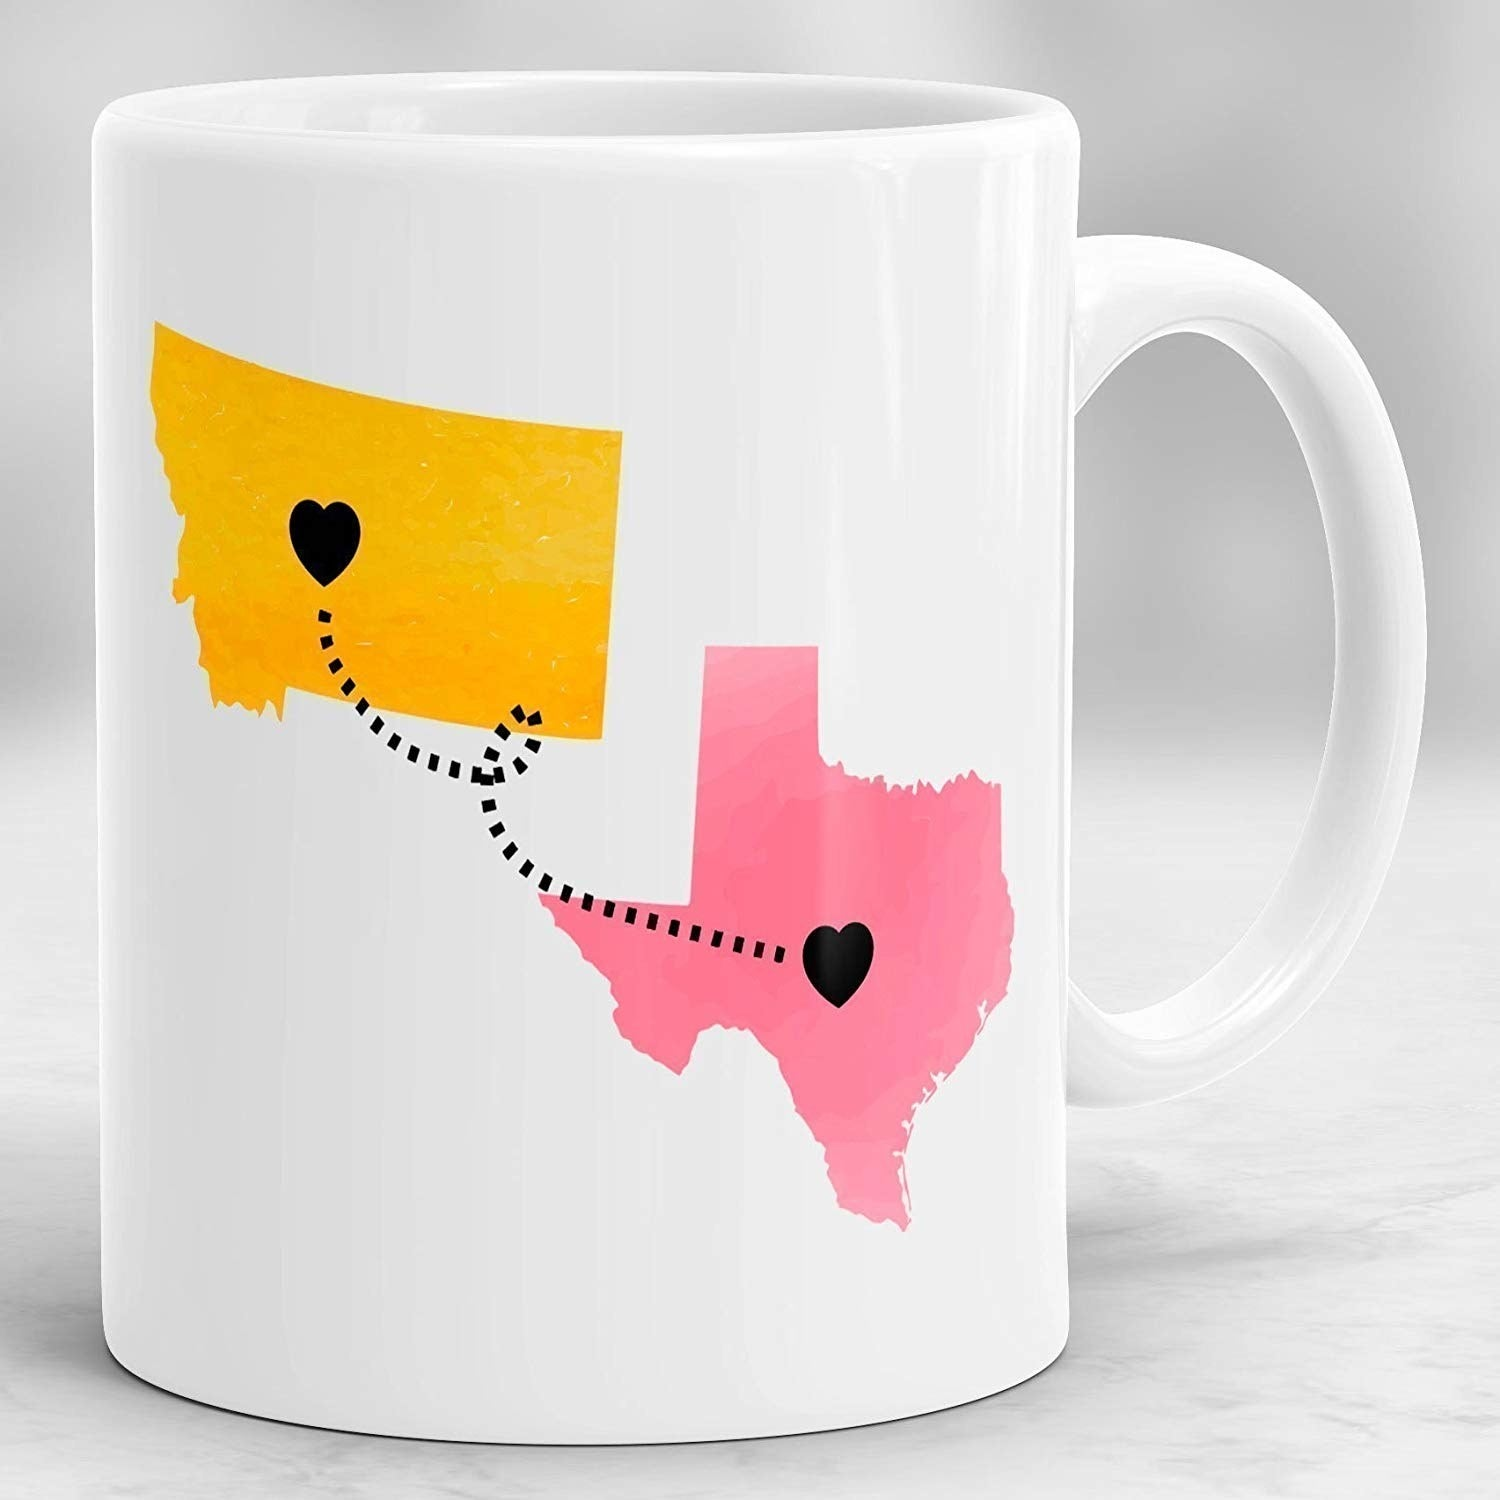 You can customize your states and their colors, as well as choose to add a quote on the back if there is a special one the two of you share! You can also personalize by country! The mug is microwave- and dishwasher-safe!Get it from Amazon for $18.85+ (available in two sizes).